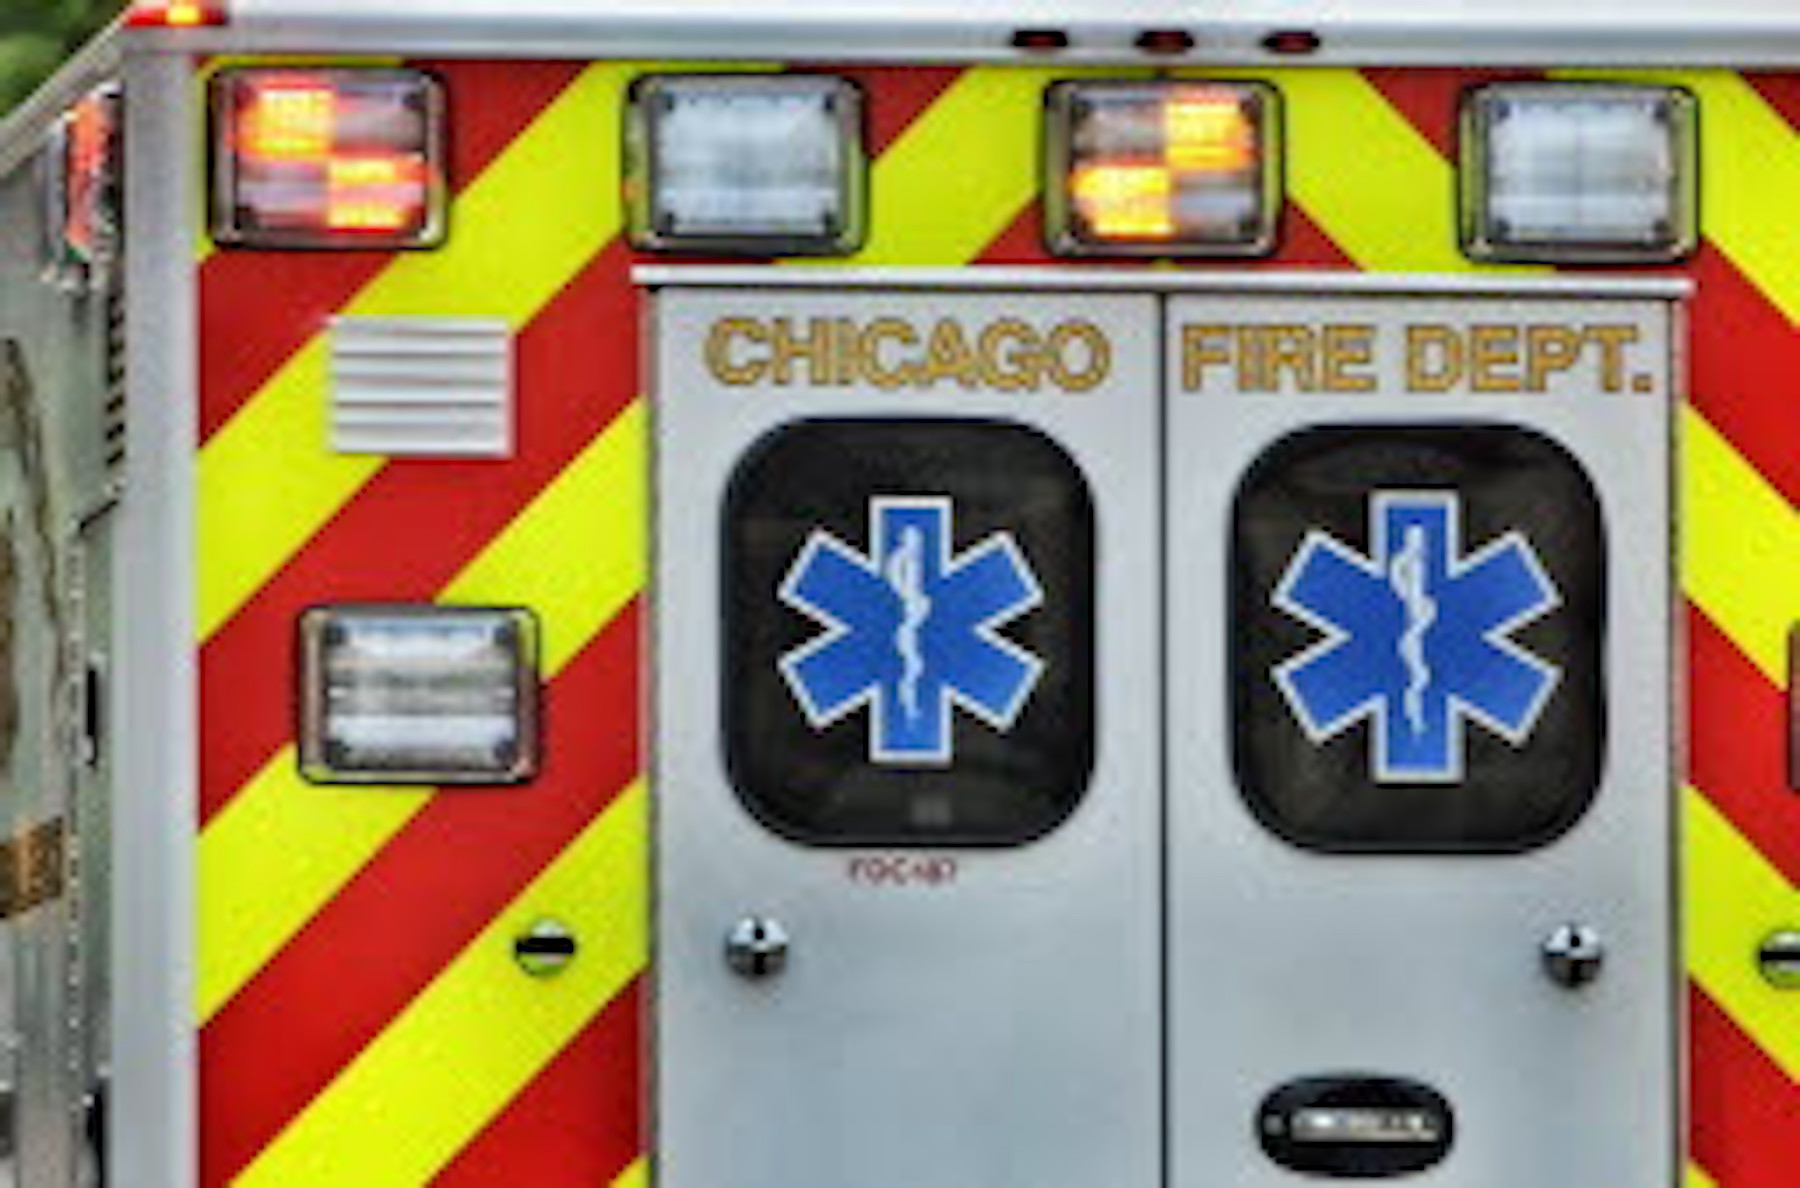 A man was hospitalized with non-life threatening injuries when he was hit by a Jeep Jan. 19, 2020 in the West Loop.